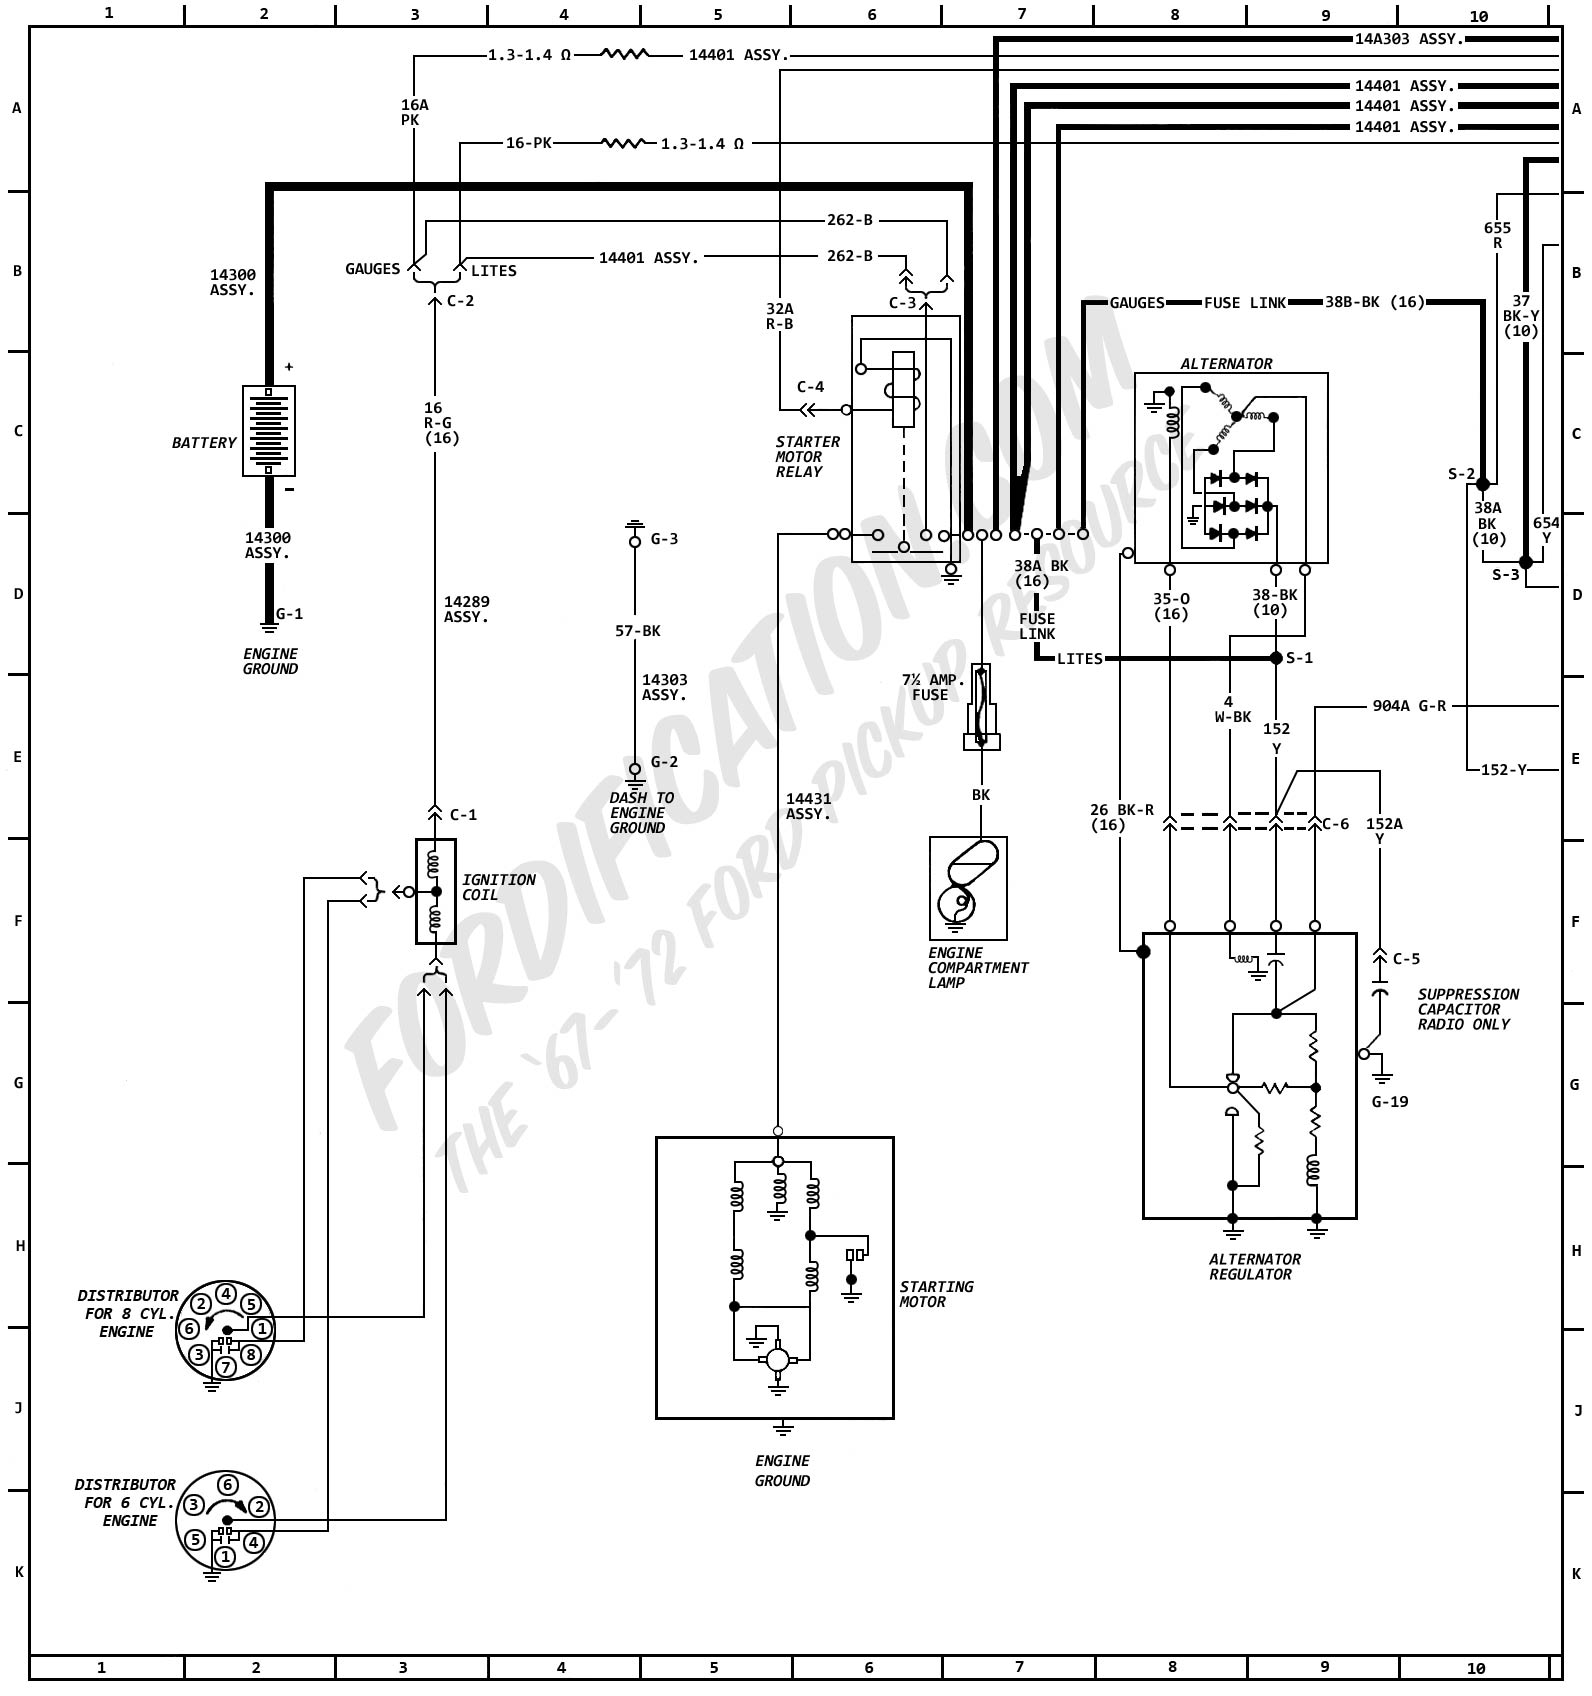 1972 ford f250 ignition wiring wiring diagram u2022 rh tinyforge co 1970 ford f100 ignition switch wiring diagram 2006 Ford F-250 Wiring Diagram